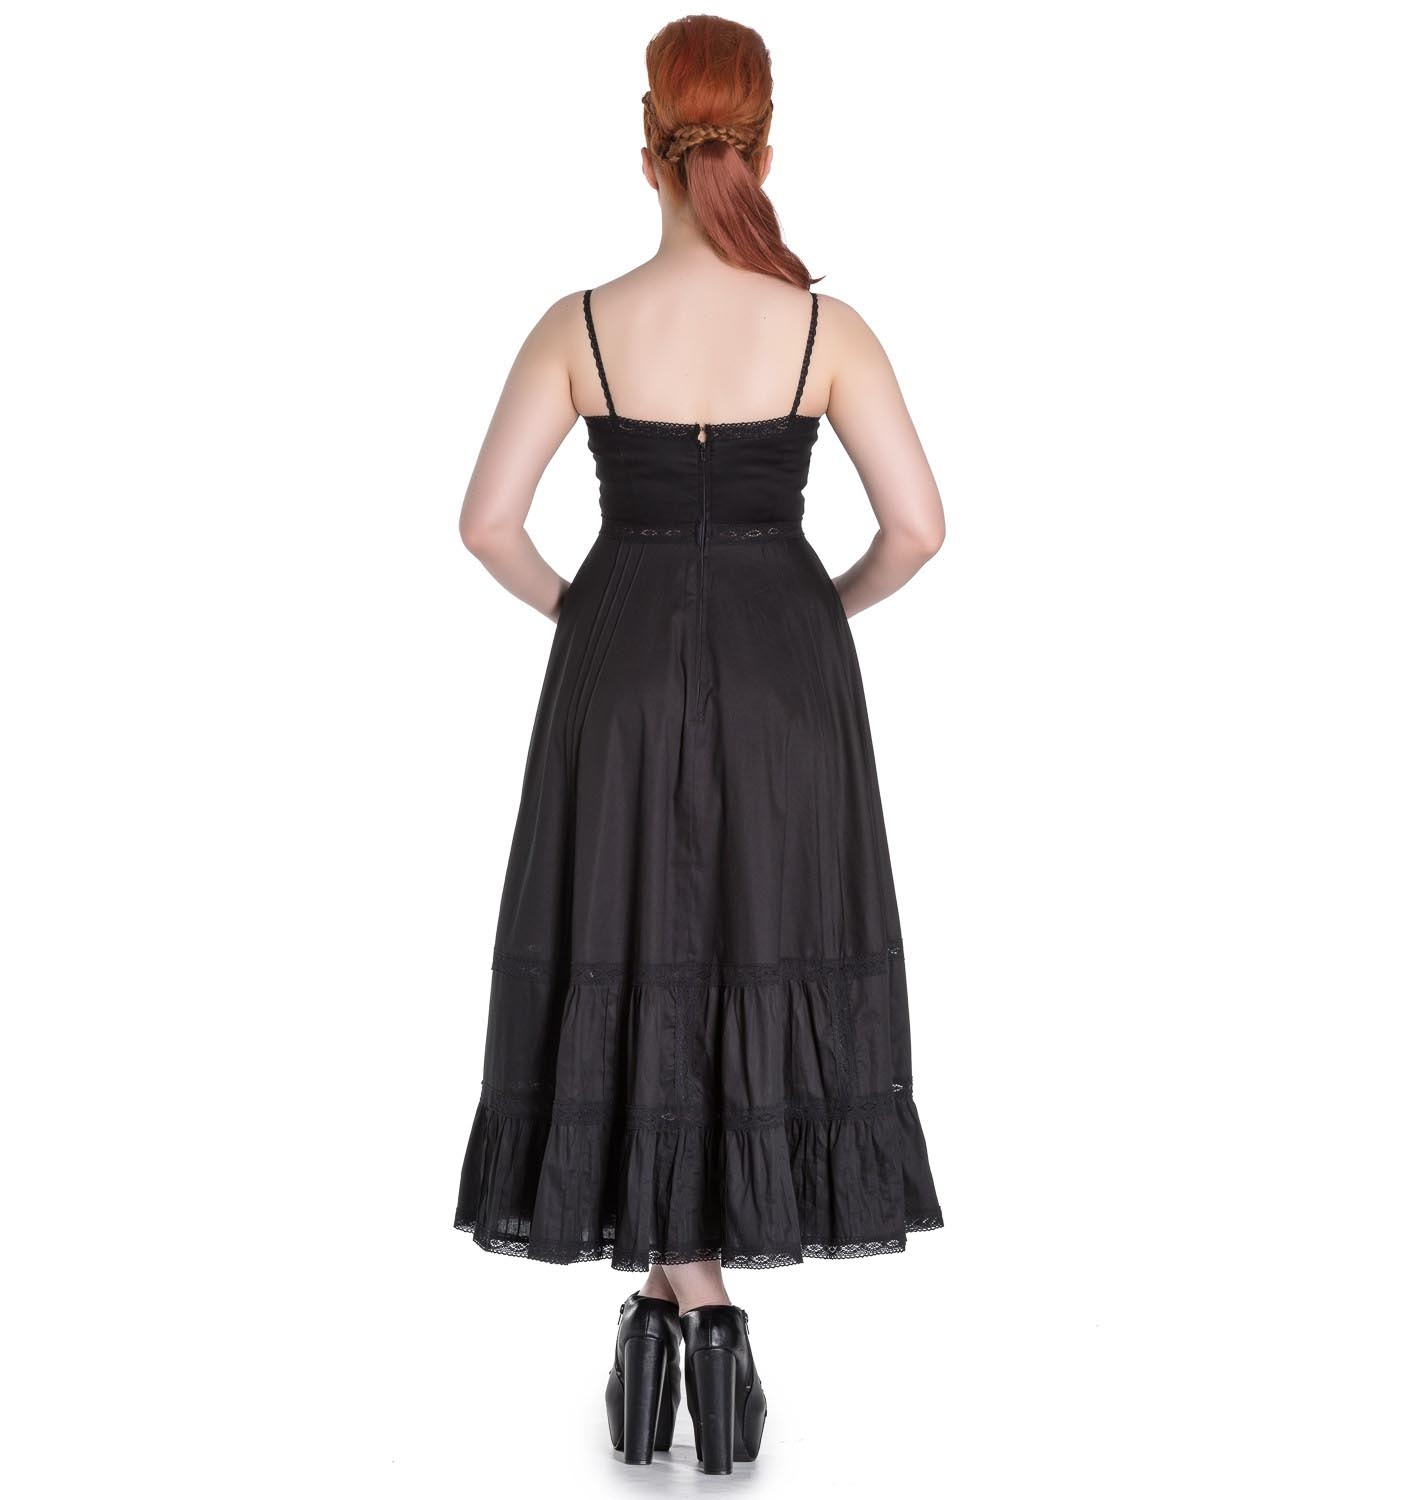 Hell-Bunny-Spin-Doctor-Goth-Maxi-Dress-ELIZABELLA-Black-All-Sizes thumbnail 5